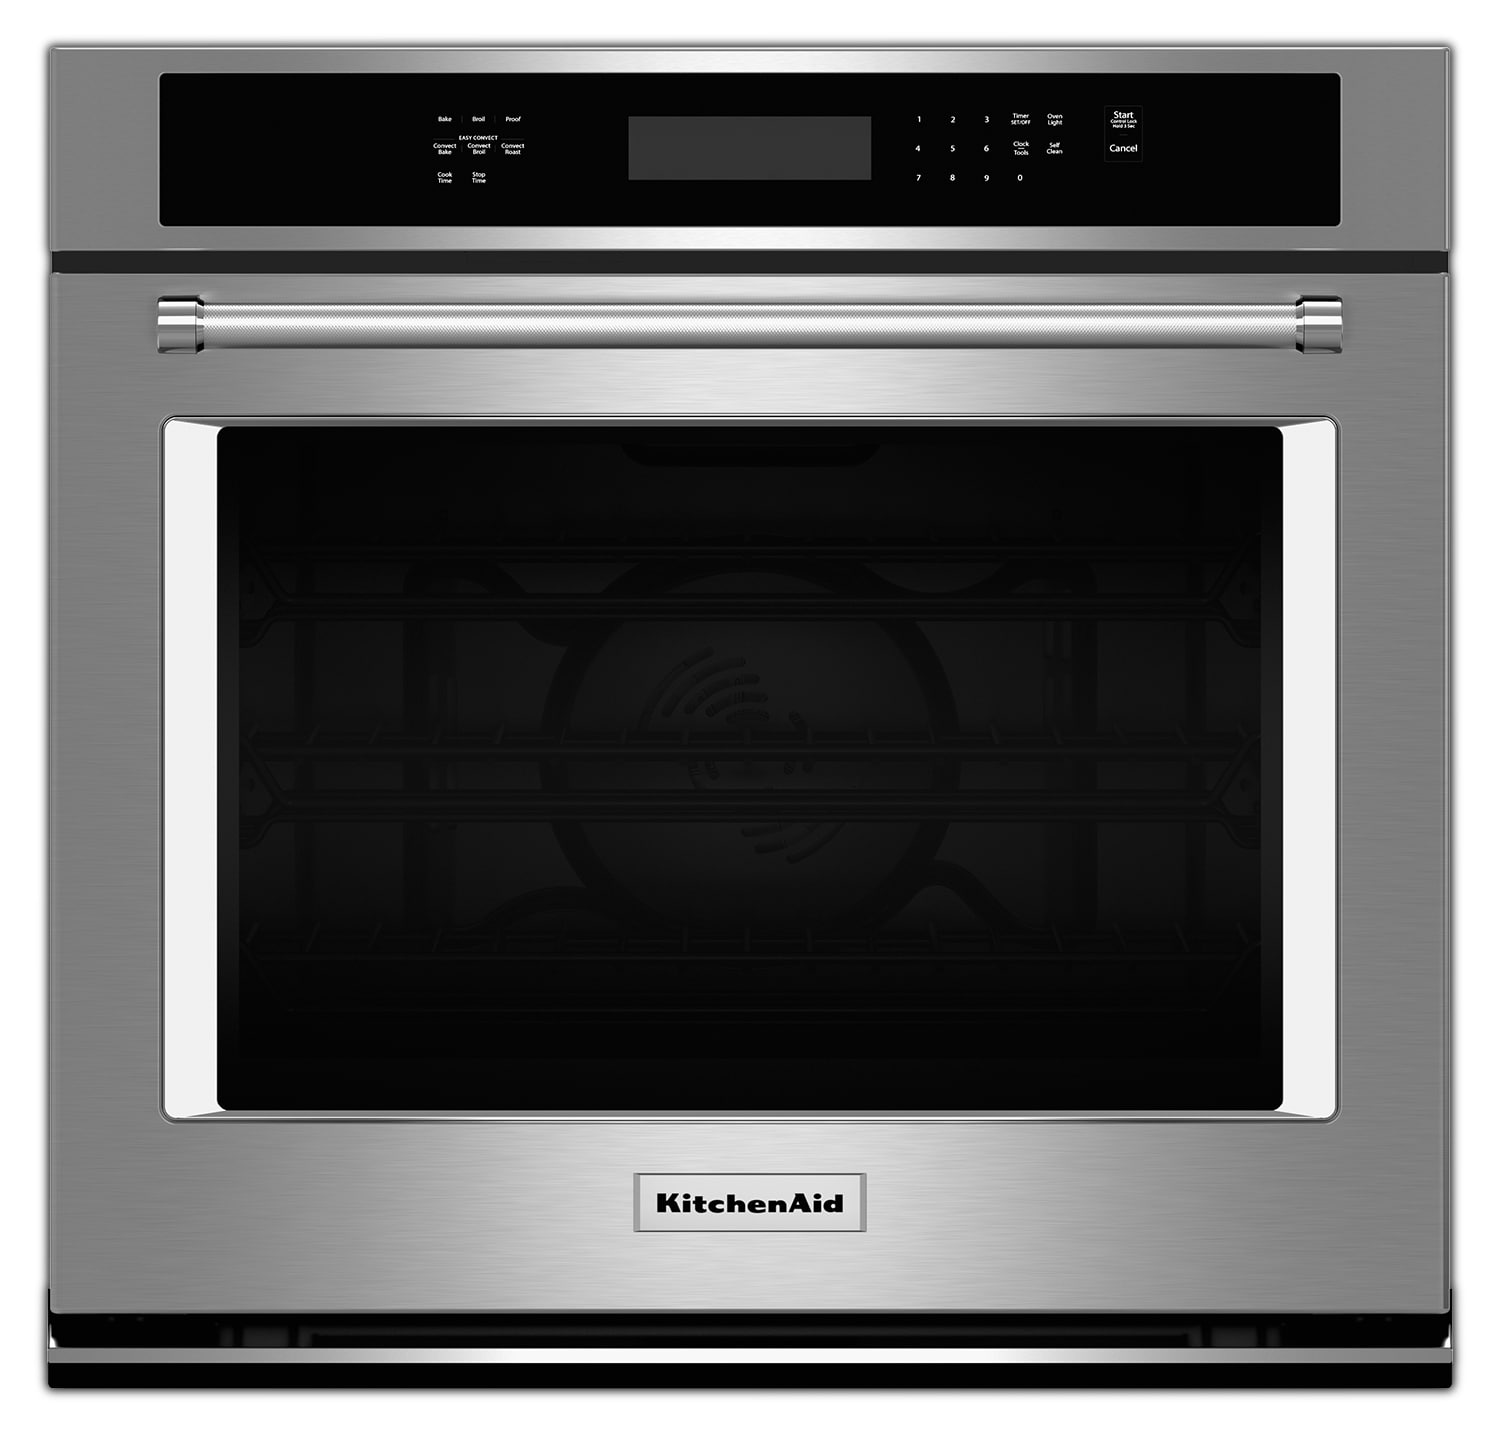 KitchenAid Stainless Steel Electric Wall Oven (4.3 Cu. Ft.) - KOSE507ESS